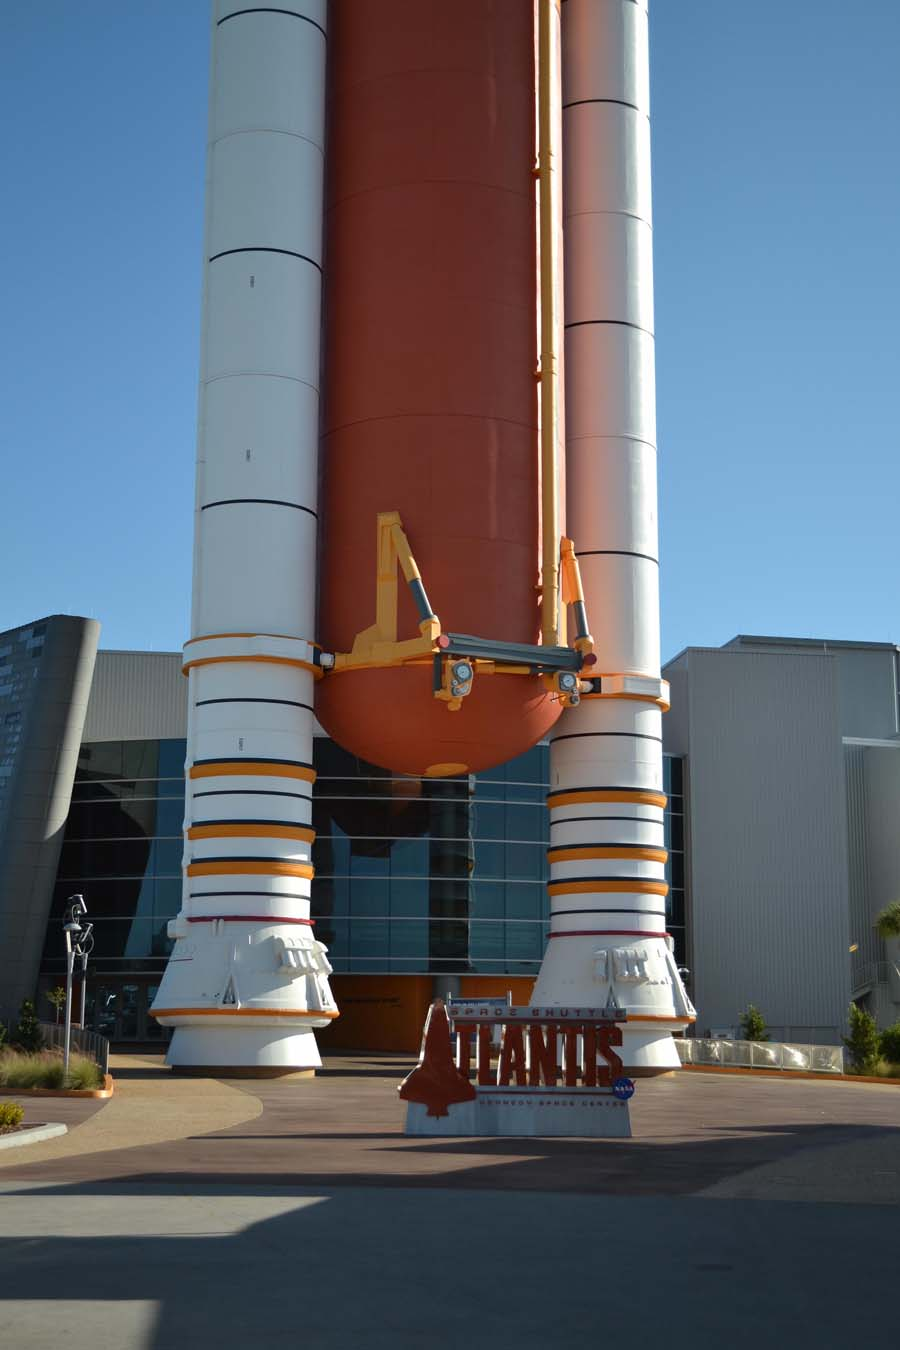 separation of booster rockets and space shuttle external tank - photo #44